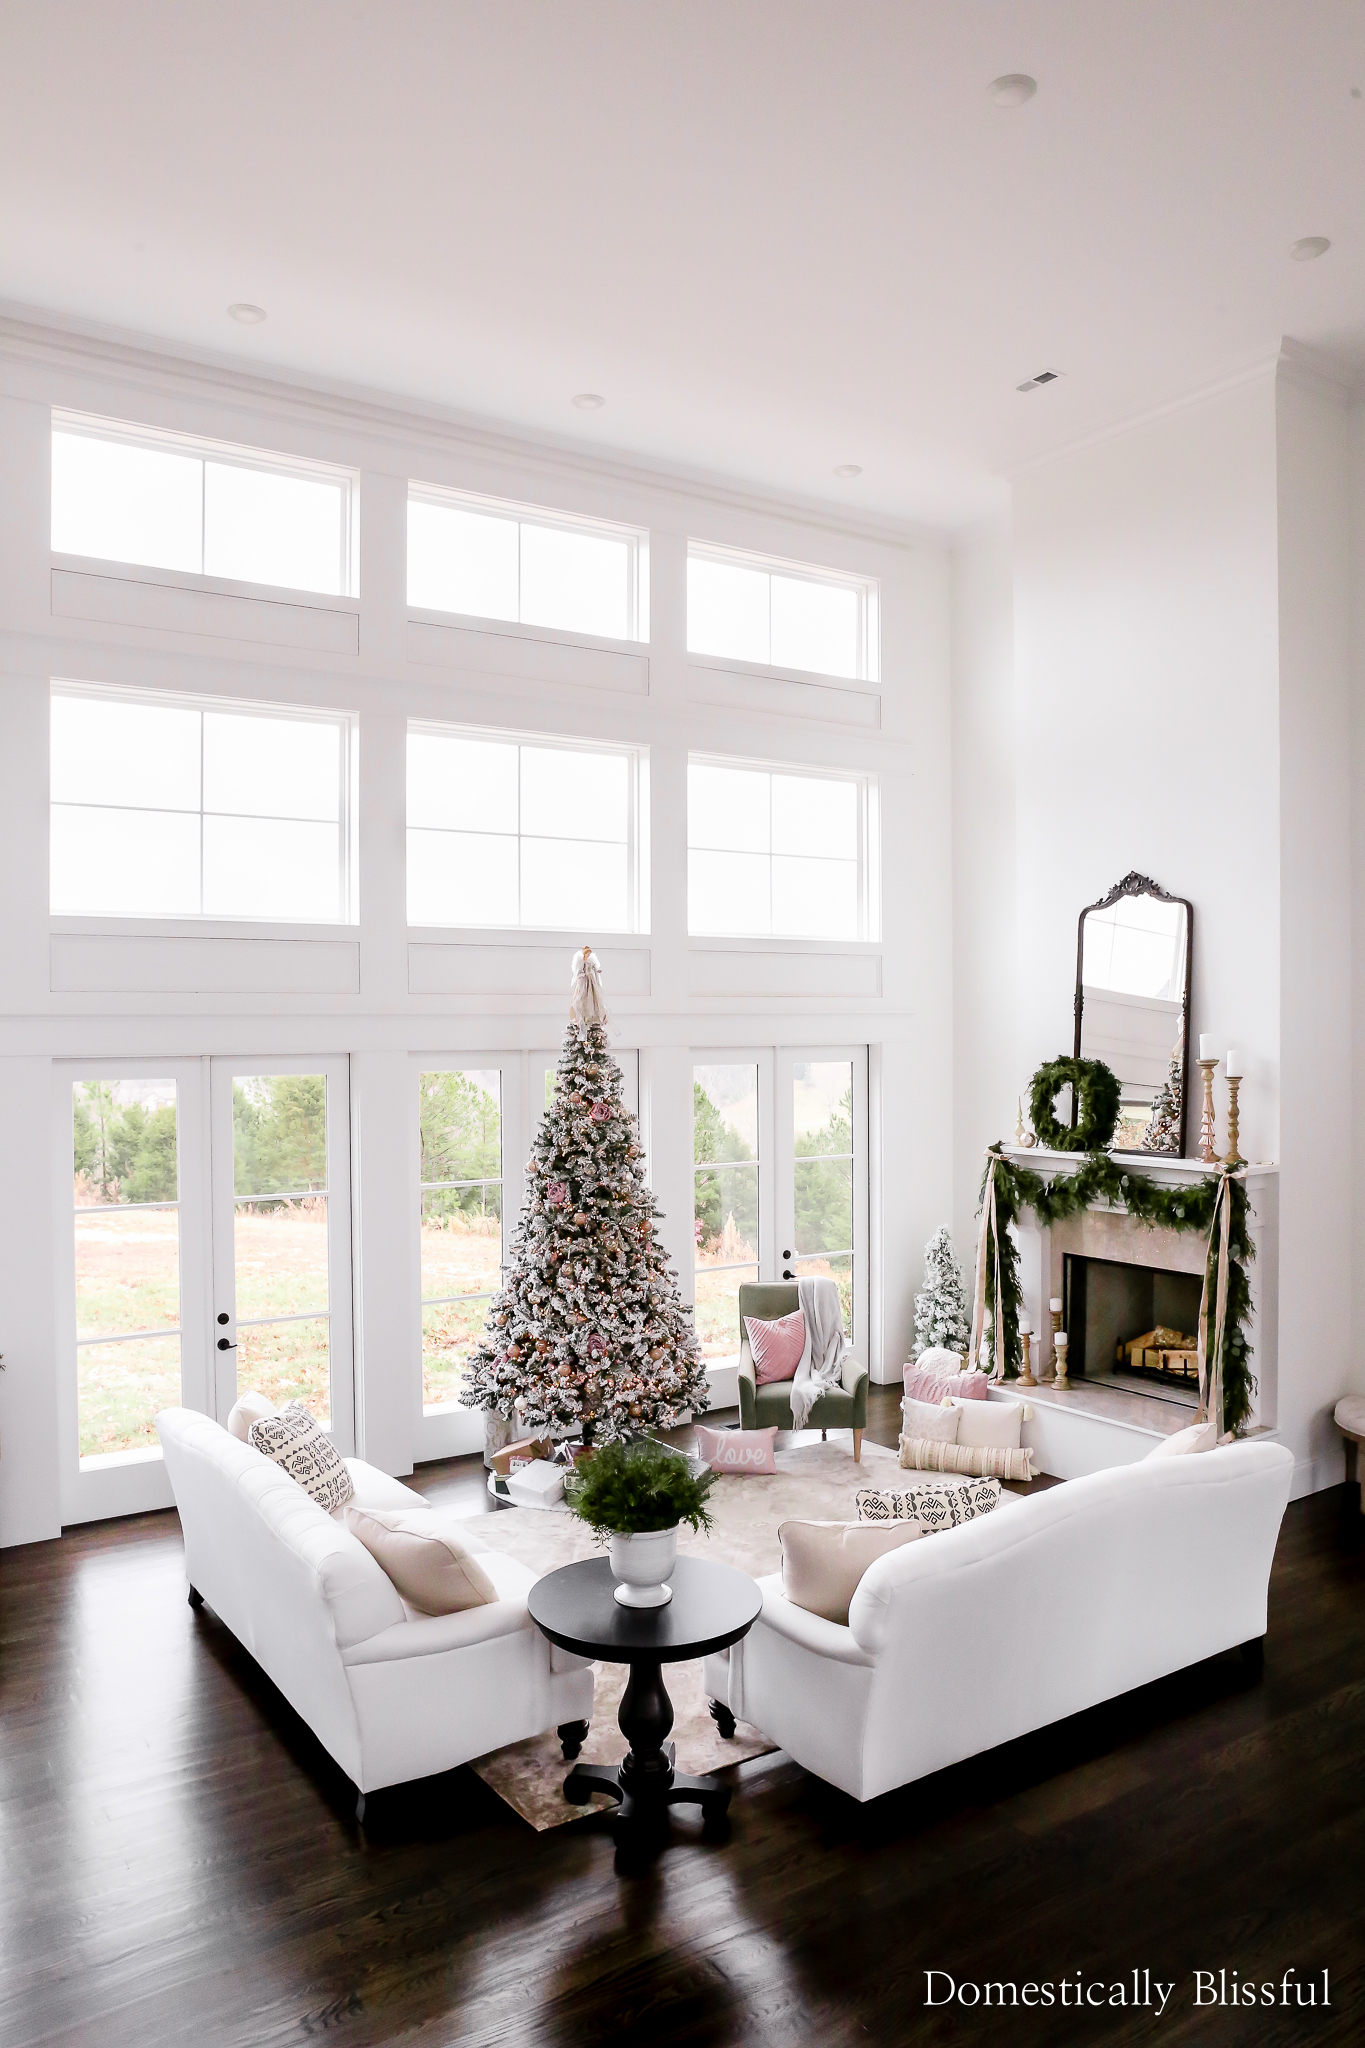 Living Room Christmas Decor - Domestically Blissful